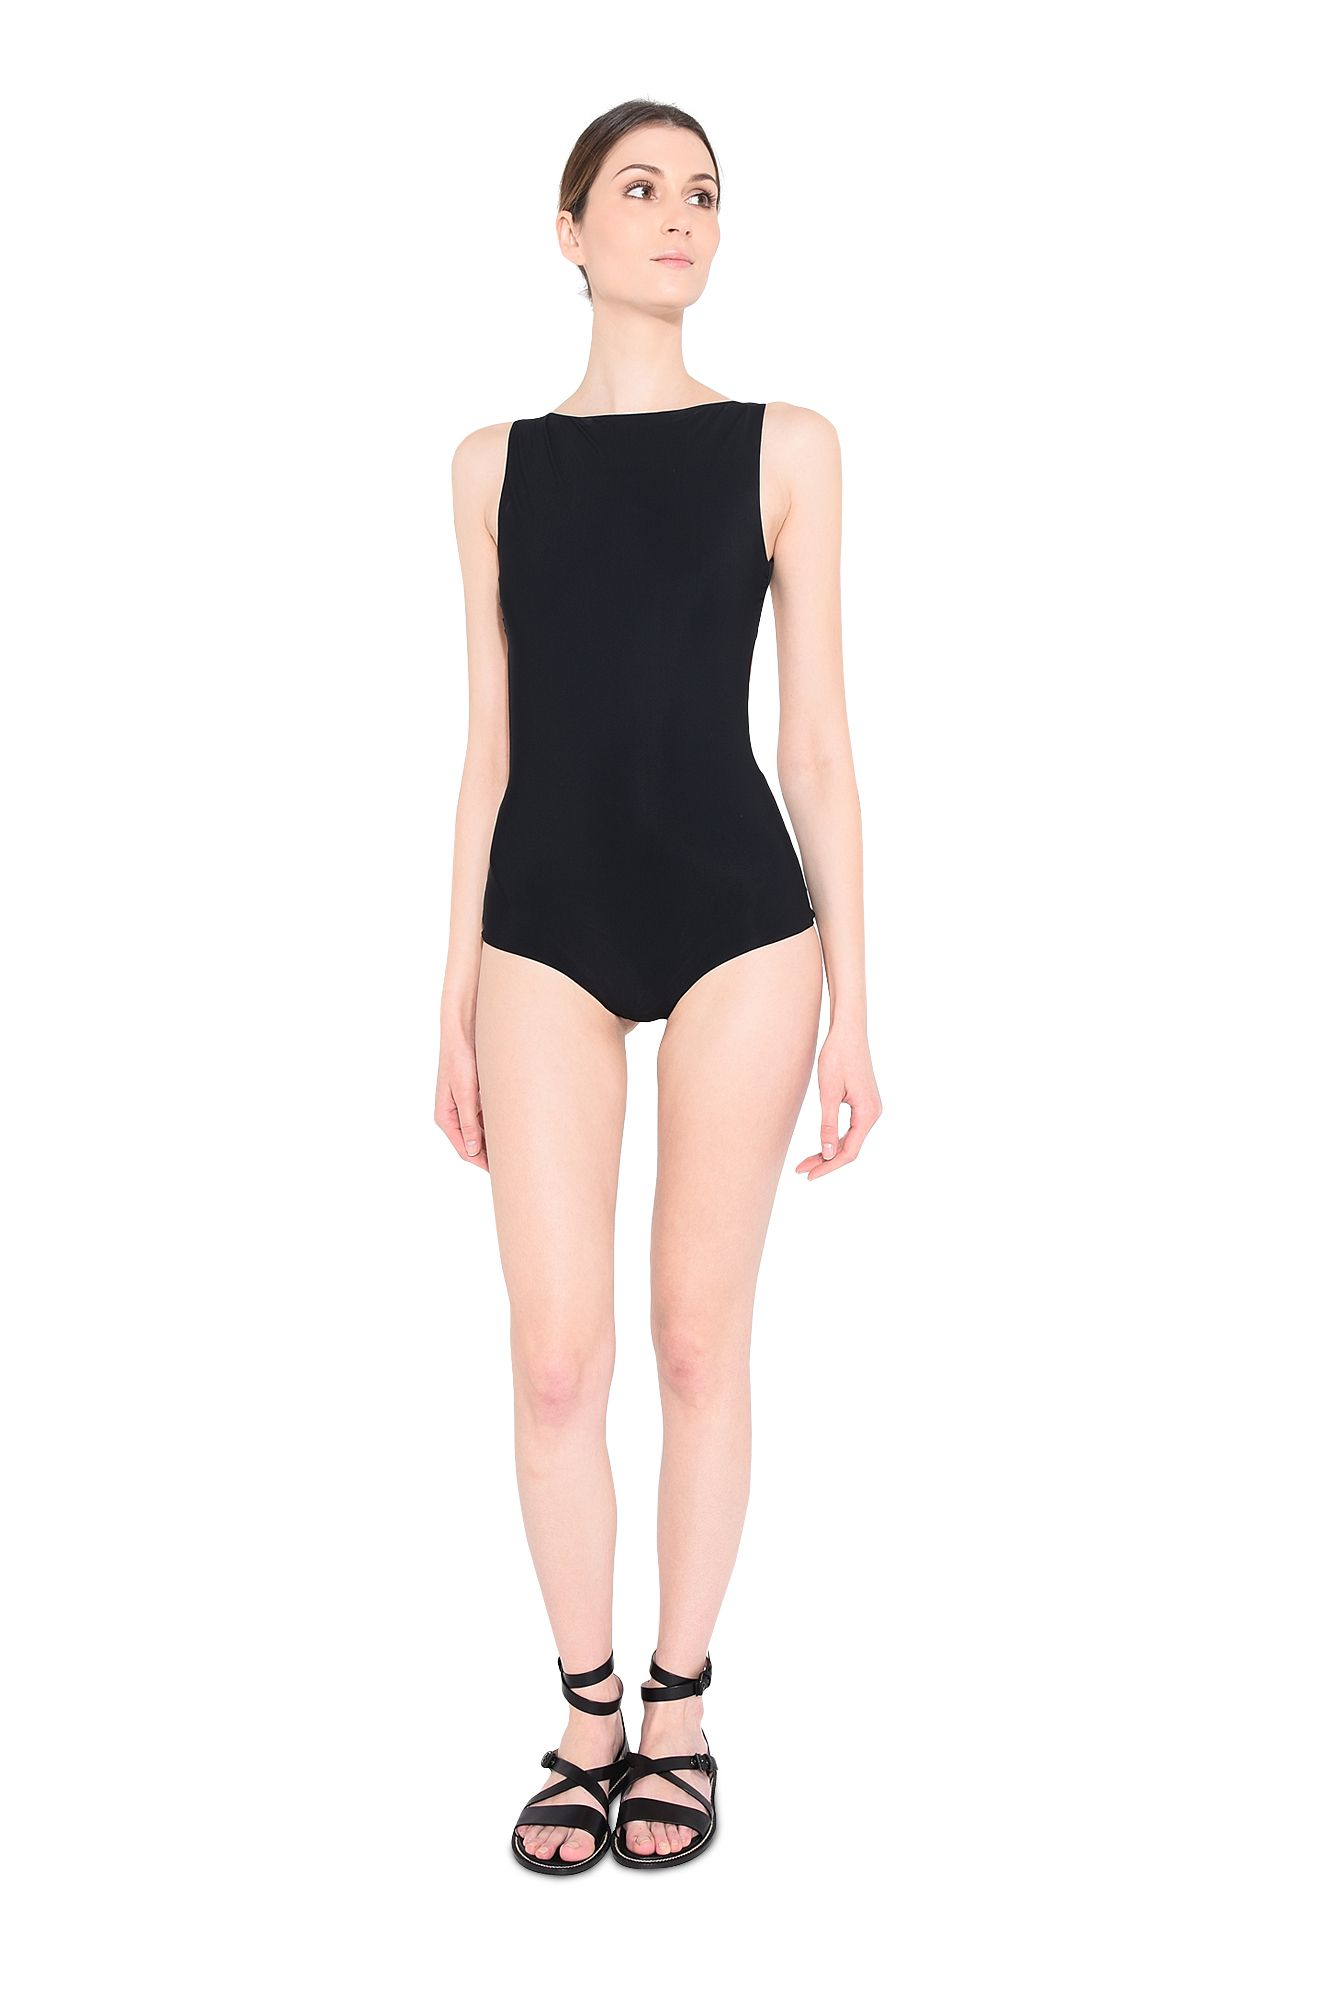 Black lycra swimsuit